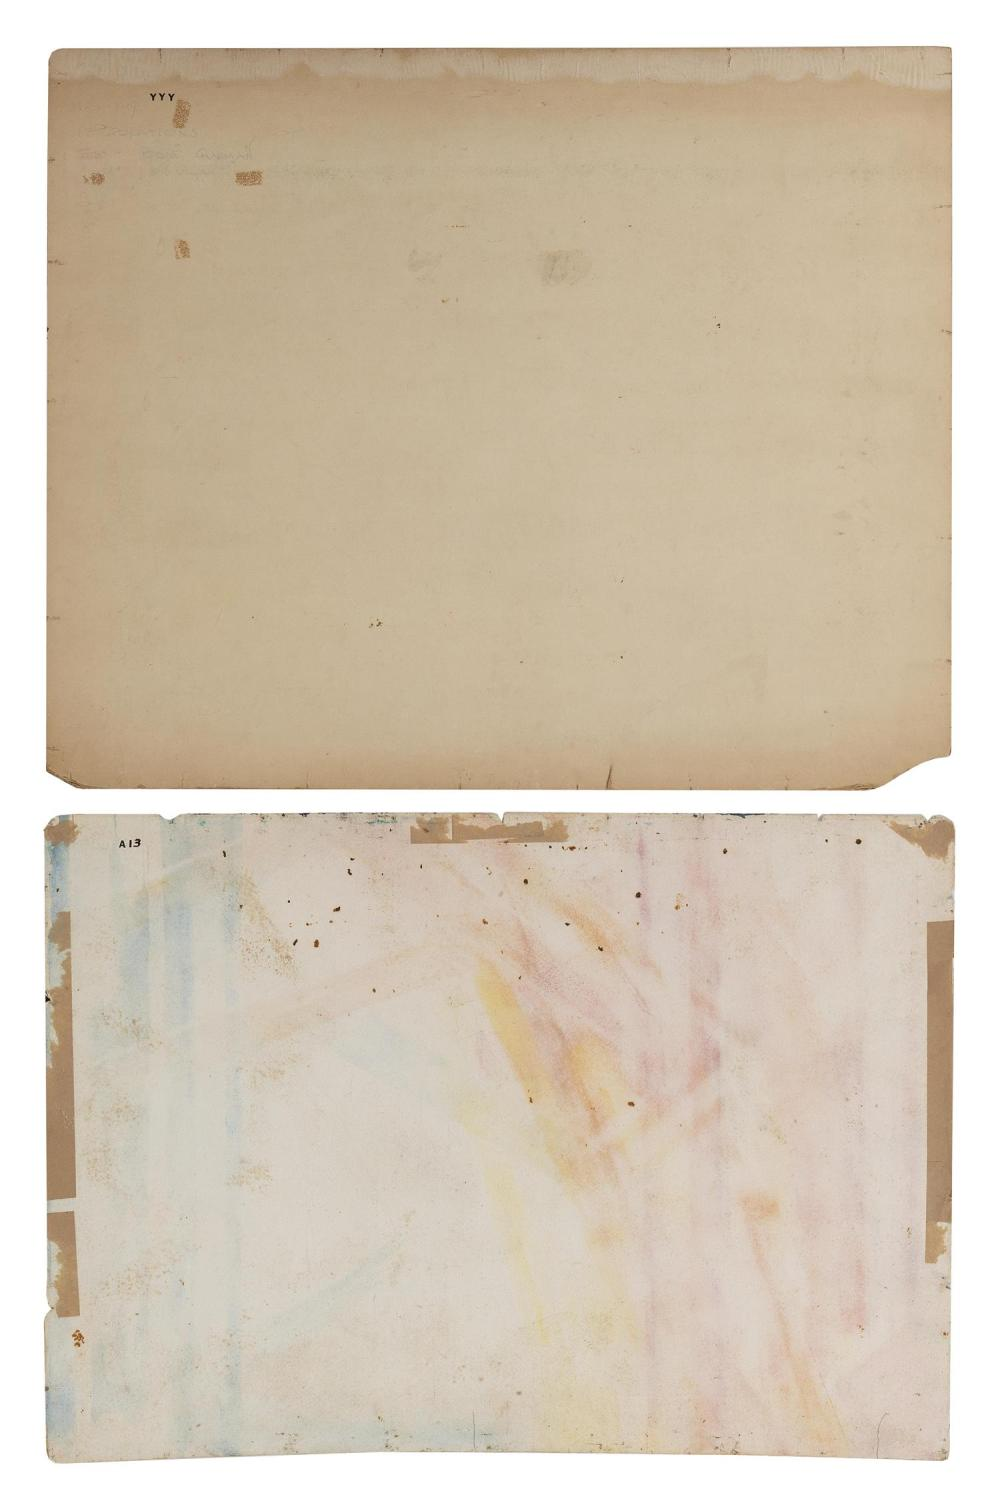 JESSIE BONE CHARMAN, New York, 1895-1986, Two abstracts., Watercolors on paper, 22